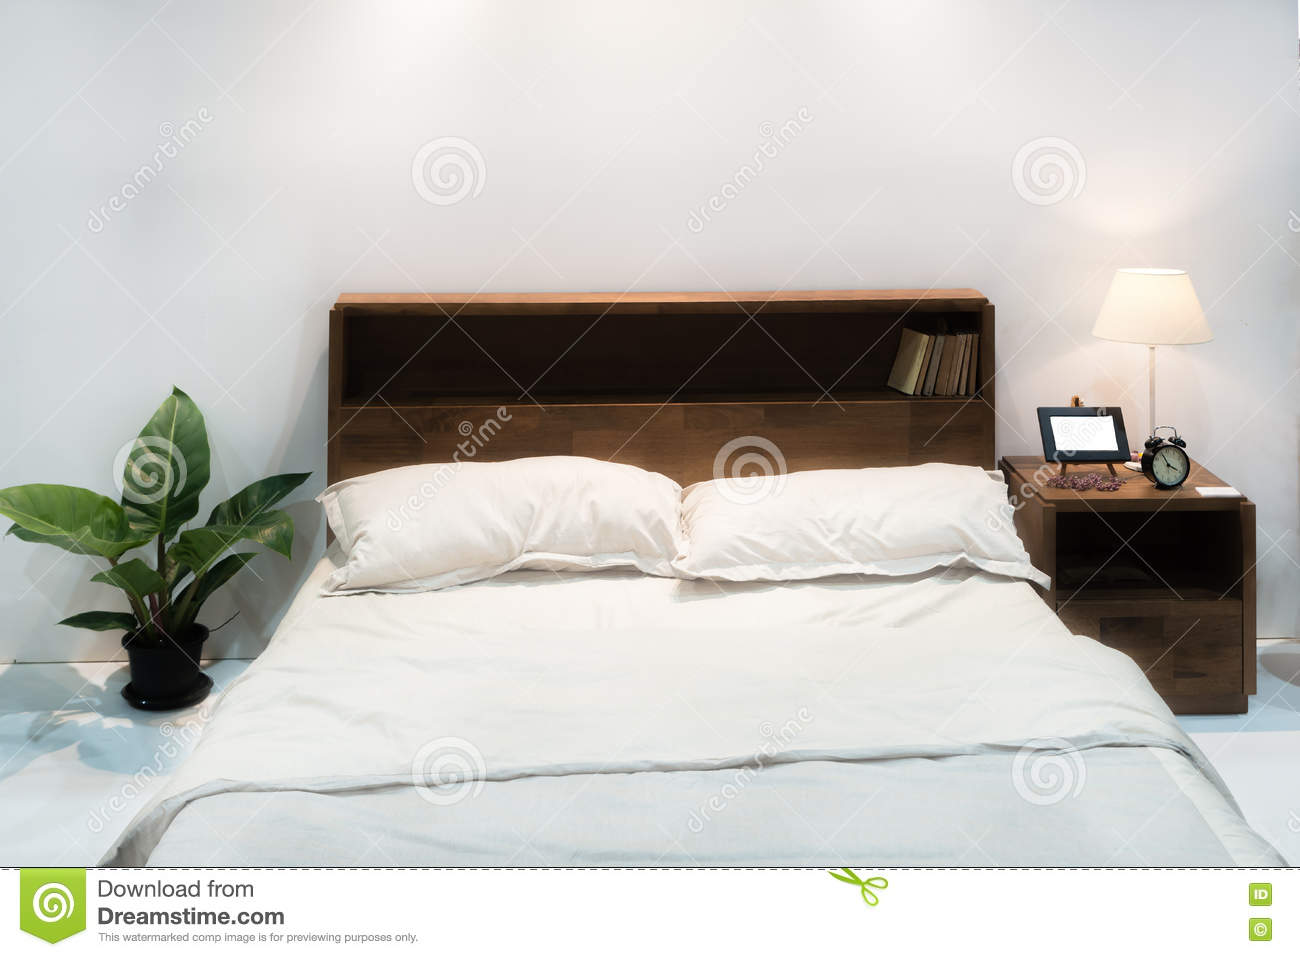 Bedroom interior with bed and pillow of cosy home in modern desi